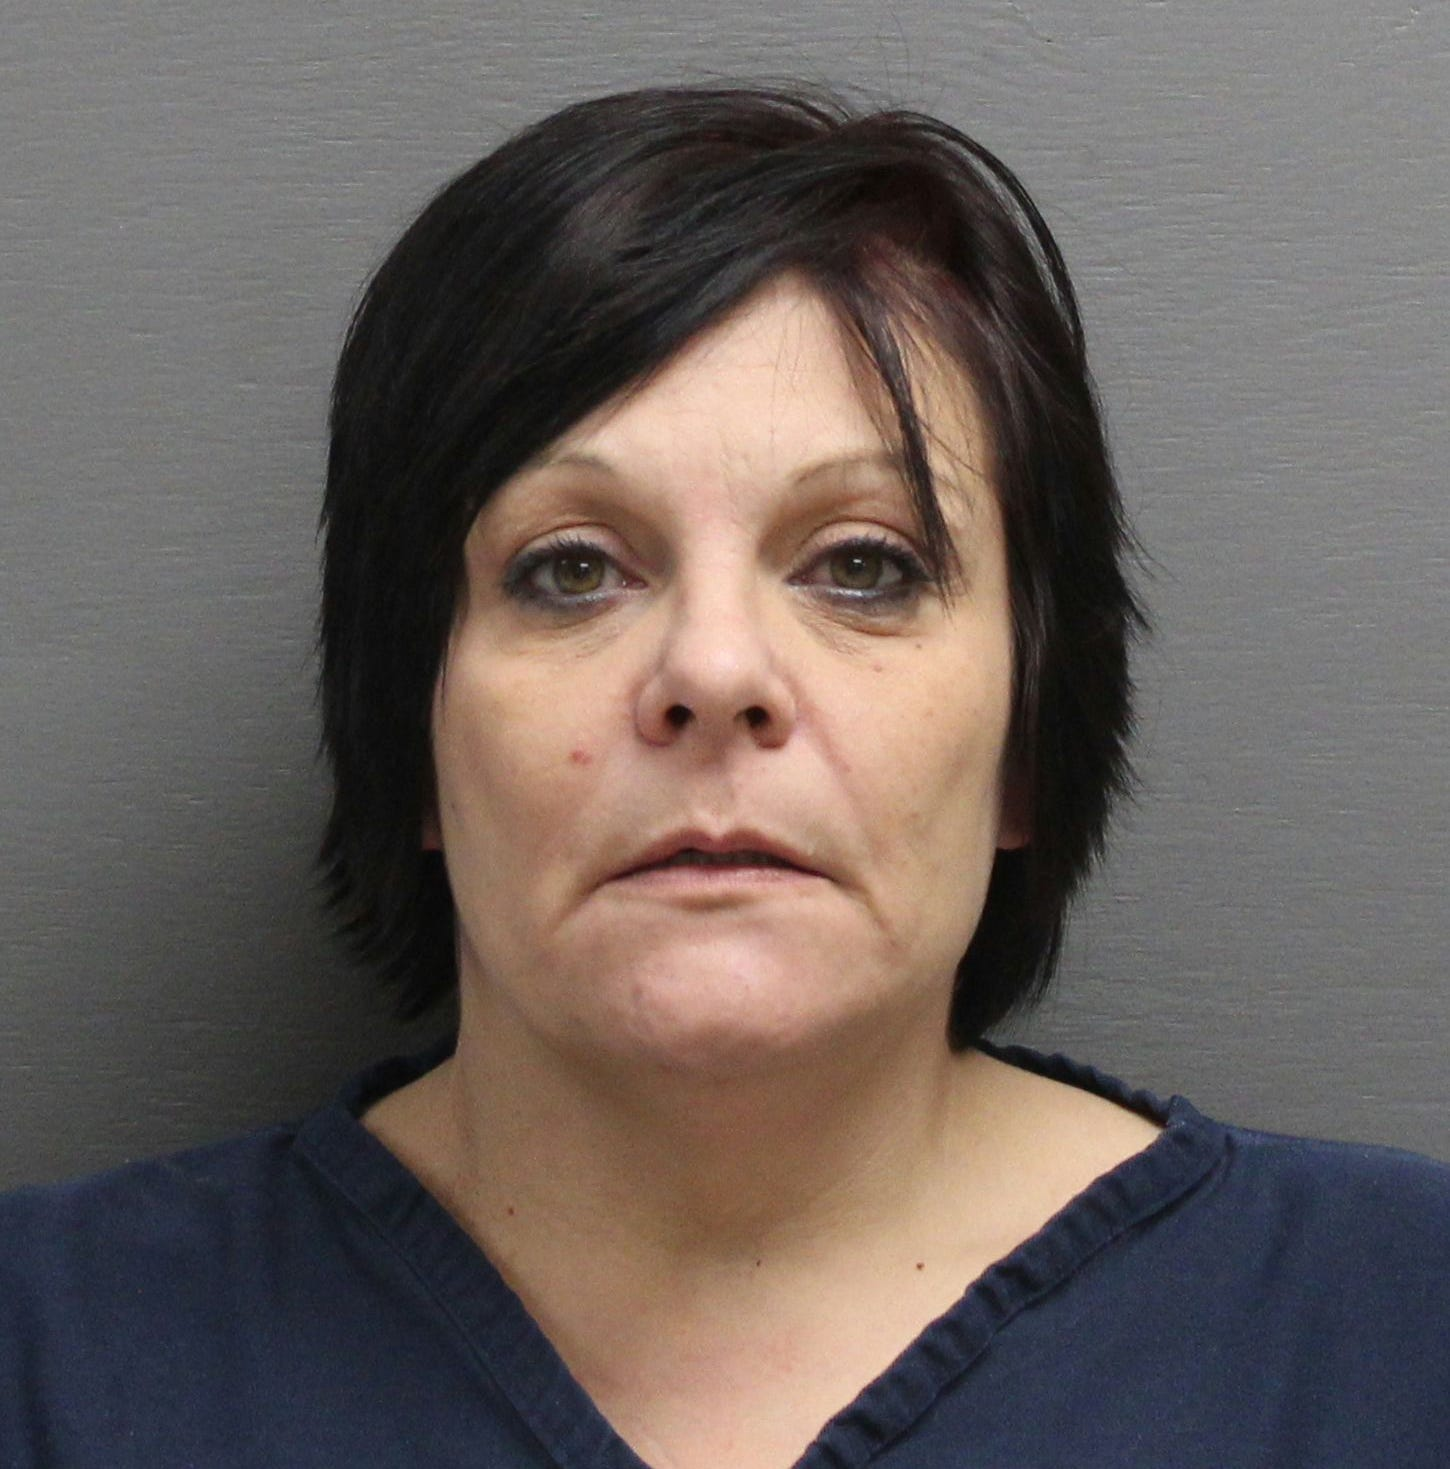 Woman arrested on meth charges after routine traffic stop